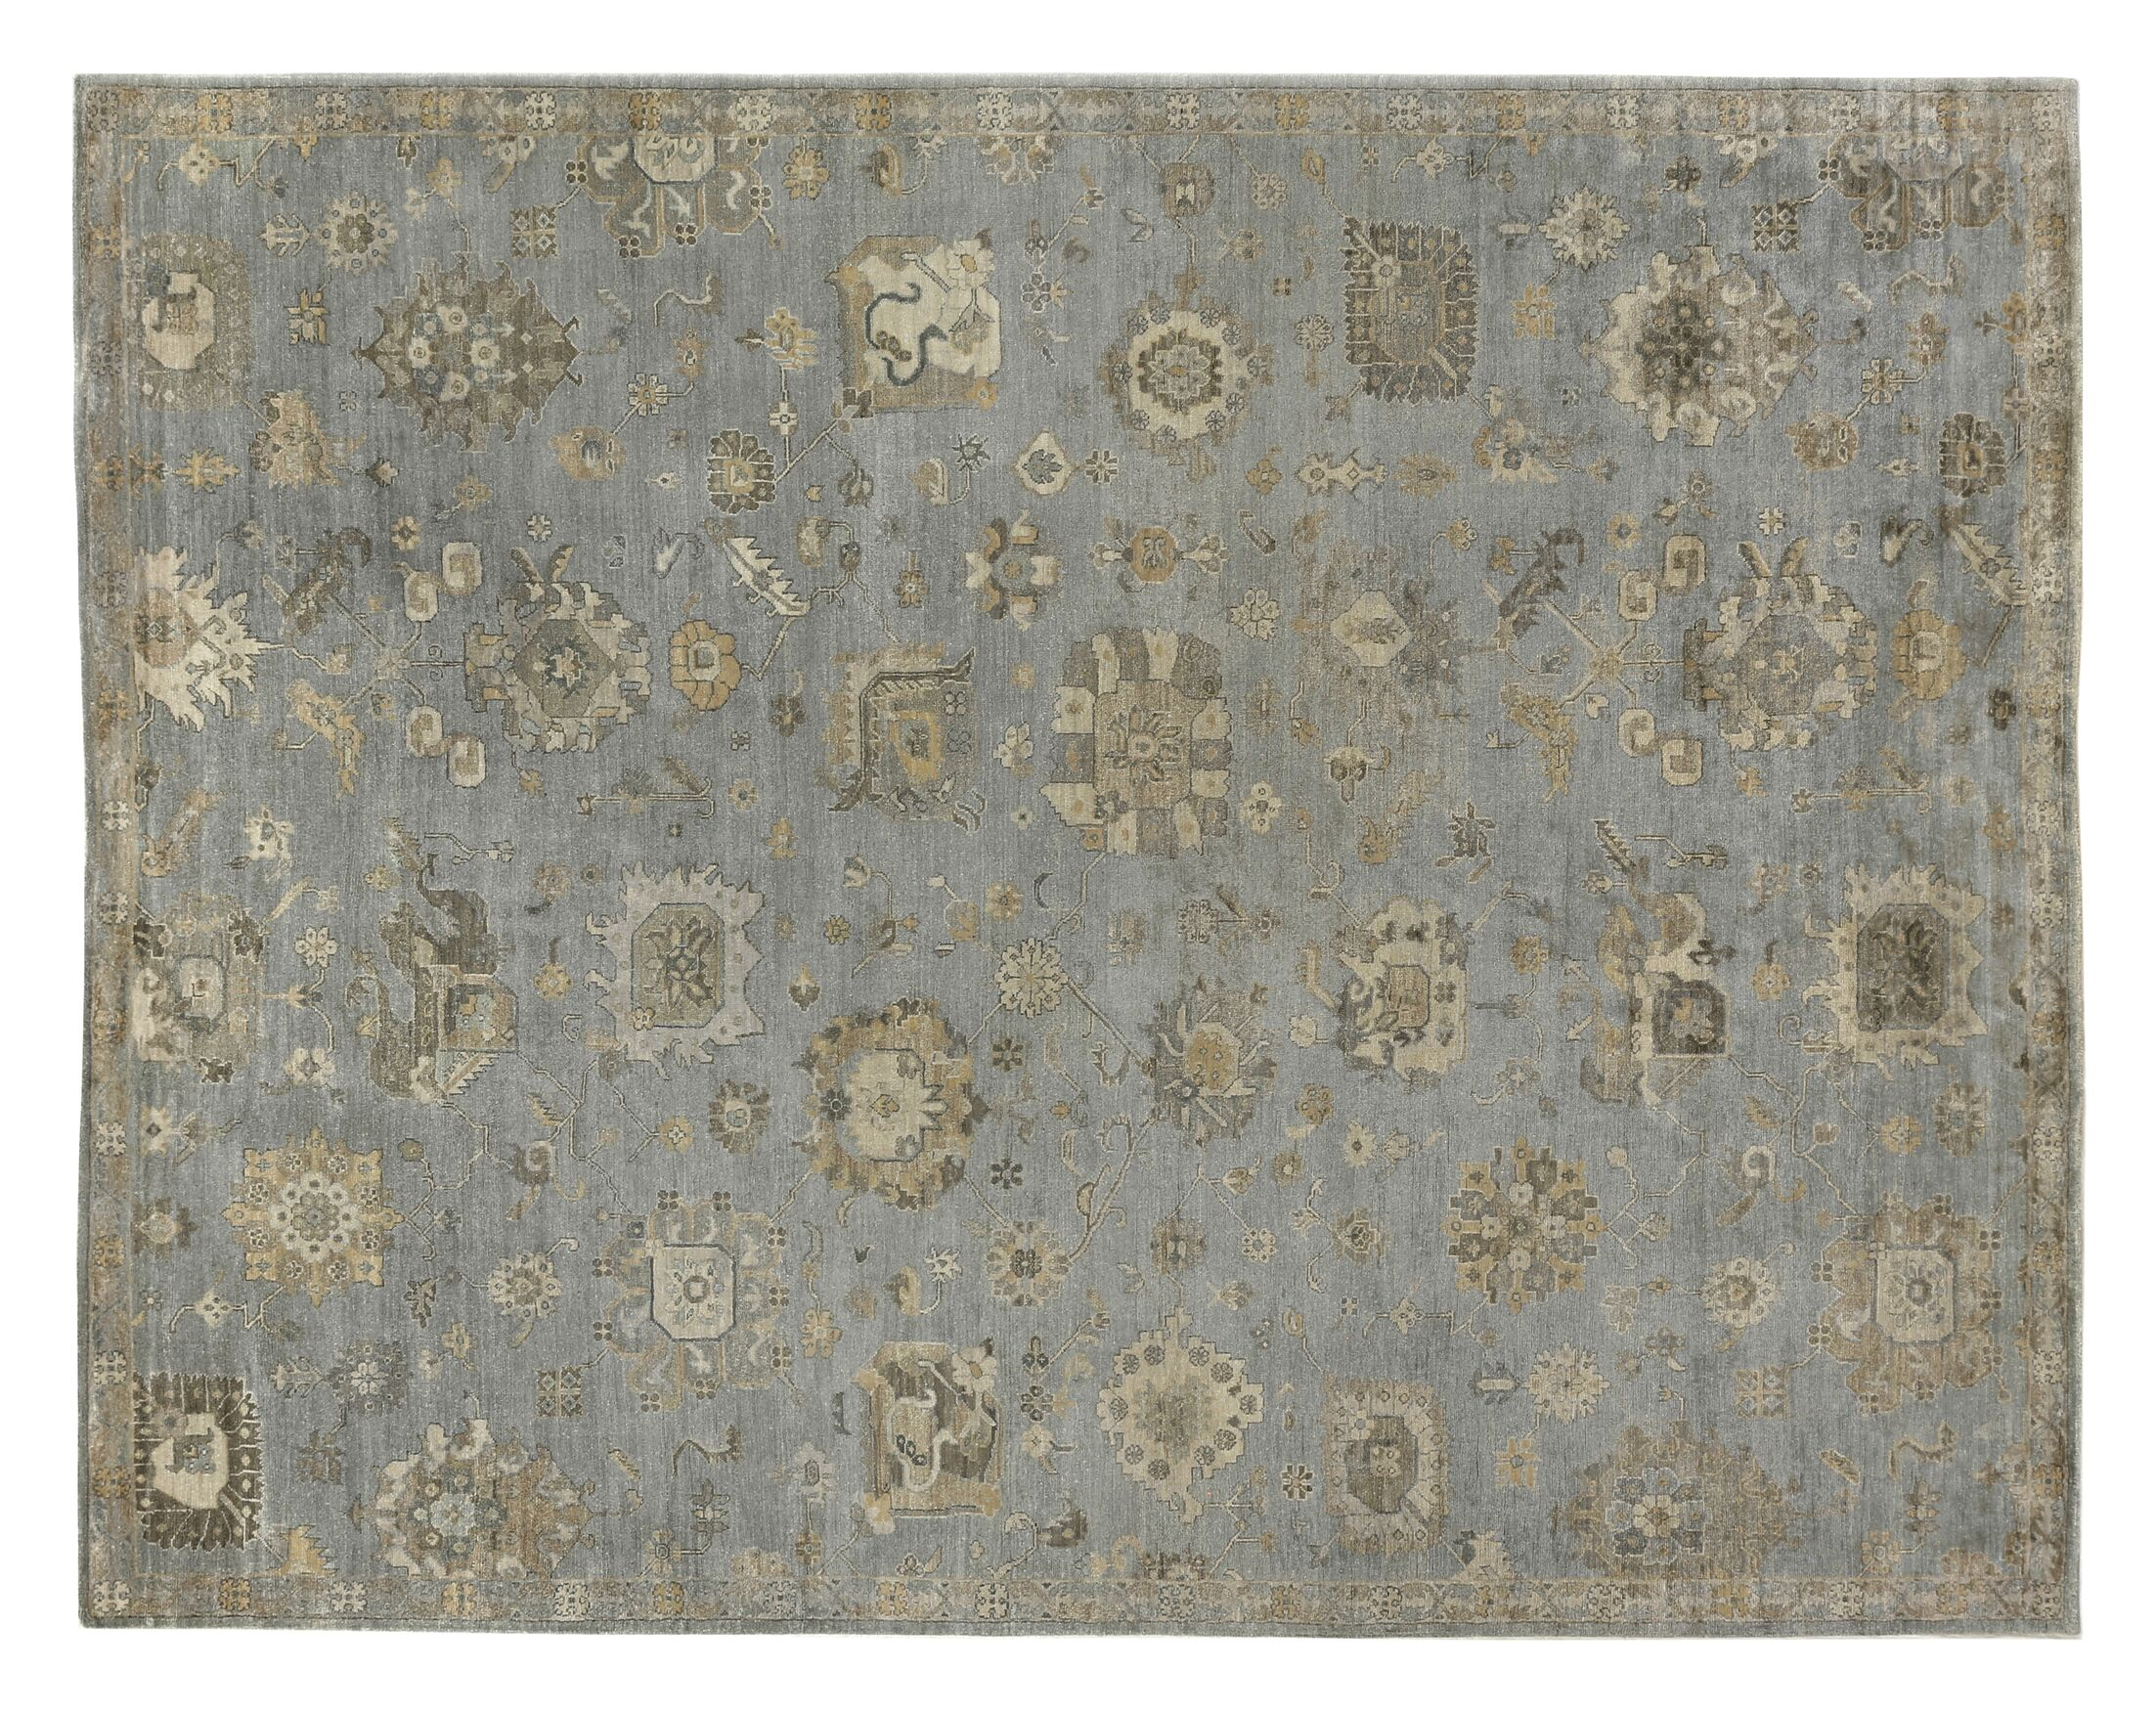 Museum Hand-Knotted Brown/Gray Area Rug Rug Size: Rectangle 14' x 18'